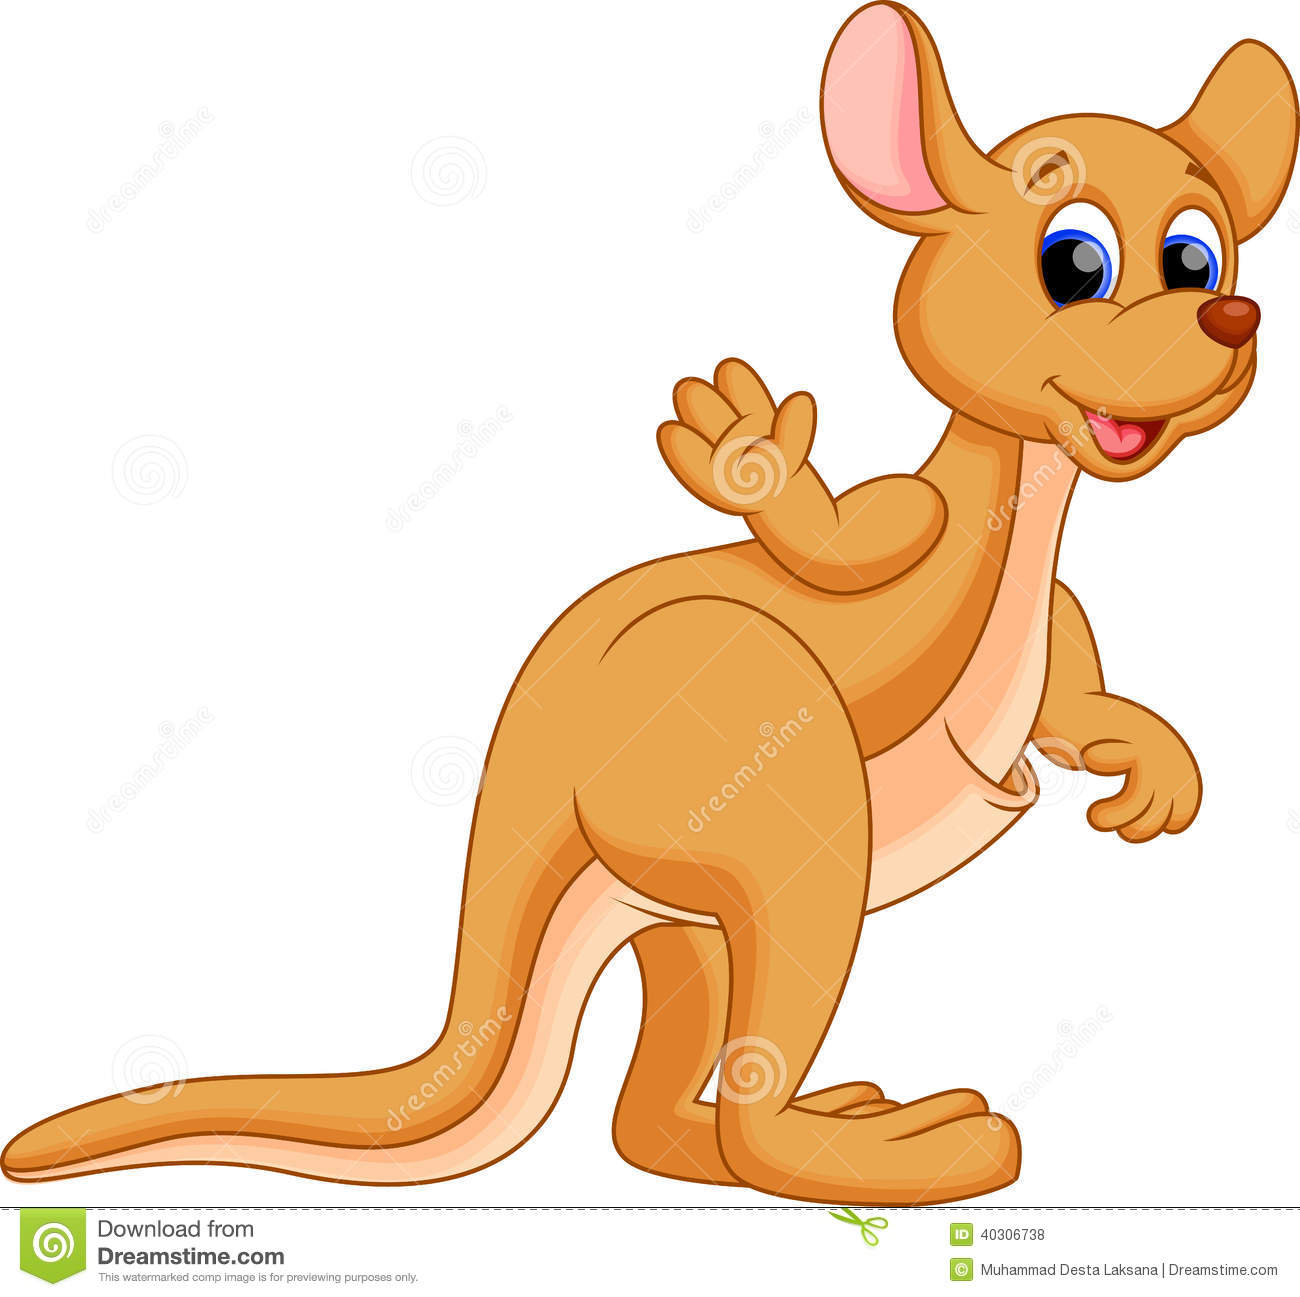 Wallaby clipart #2, Download drawings